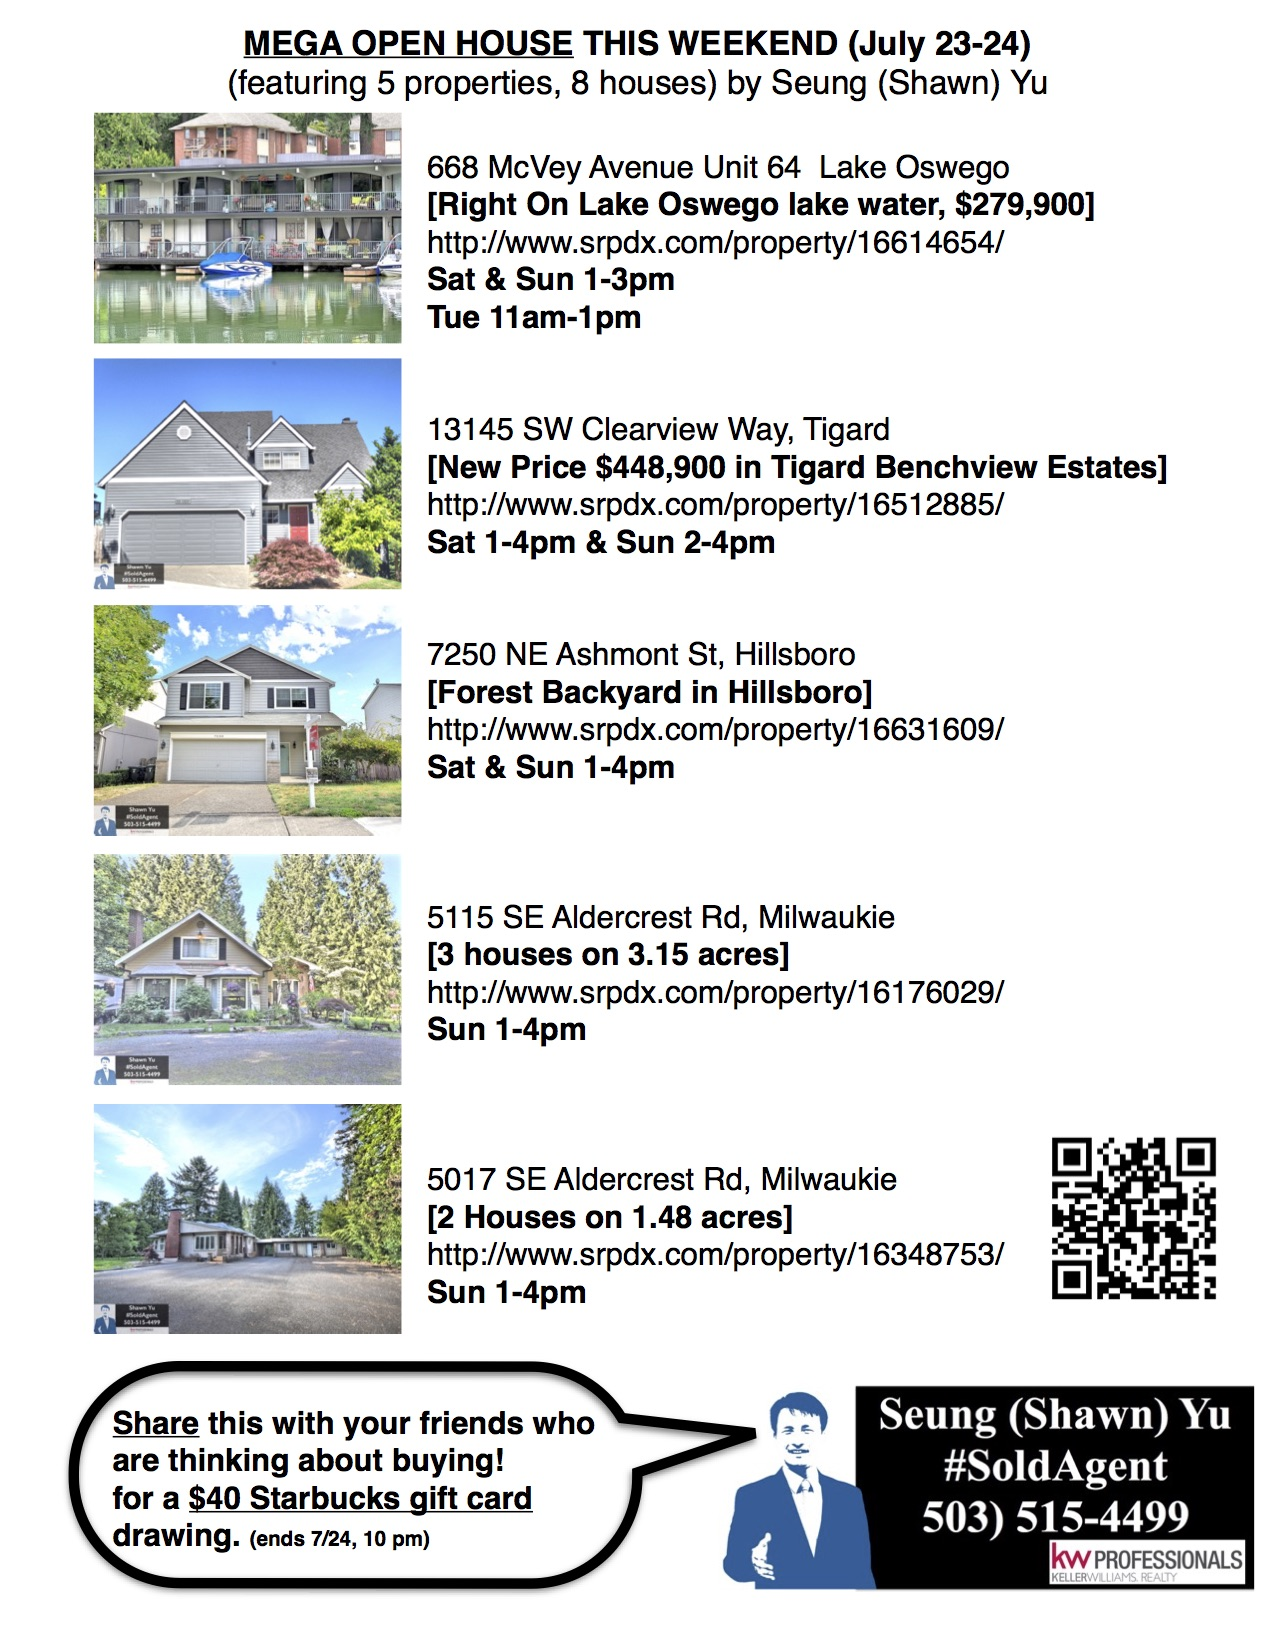 MEGA OPEN HOUSE THIS WEEKEND (July 23-24) (featuring 5 properties, 8 houses) by Seung (Shawn) Yu